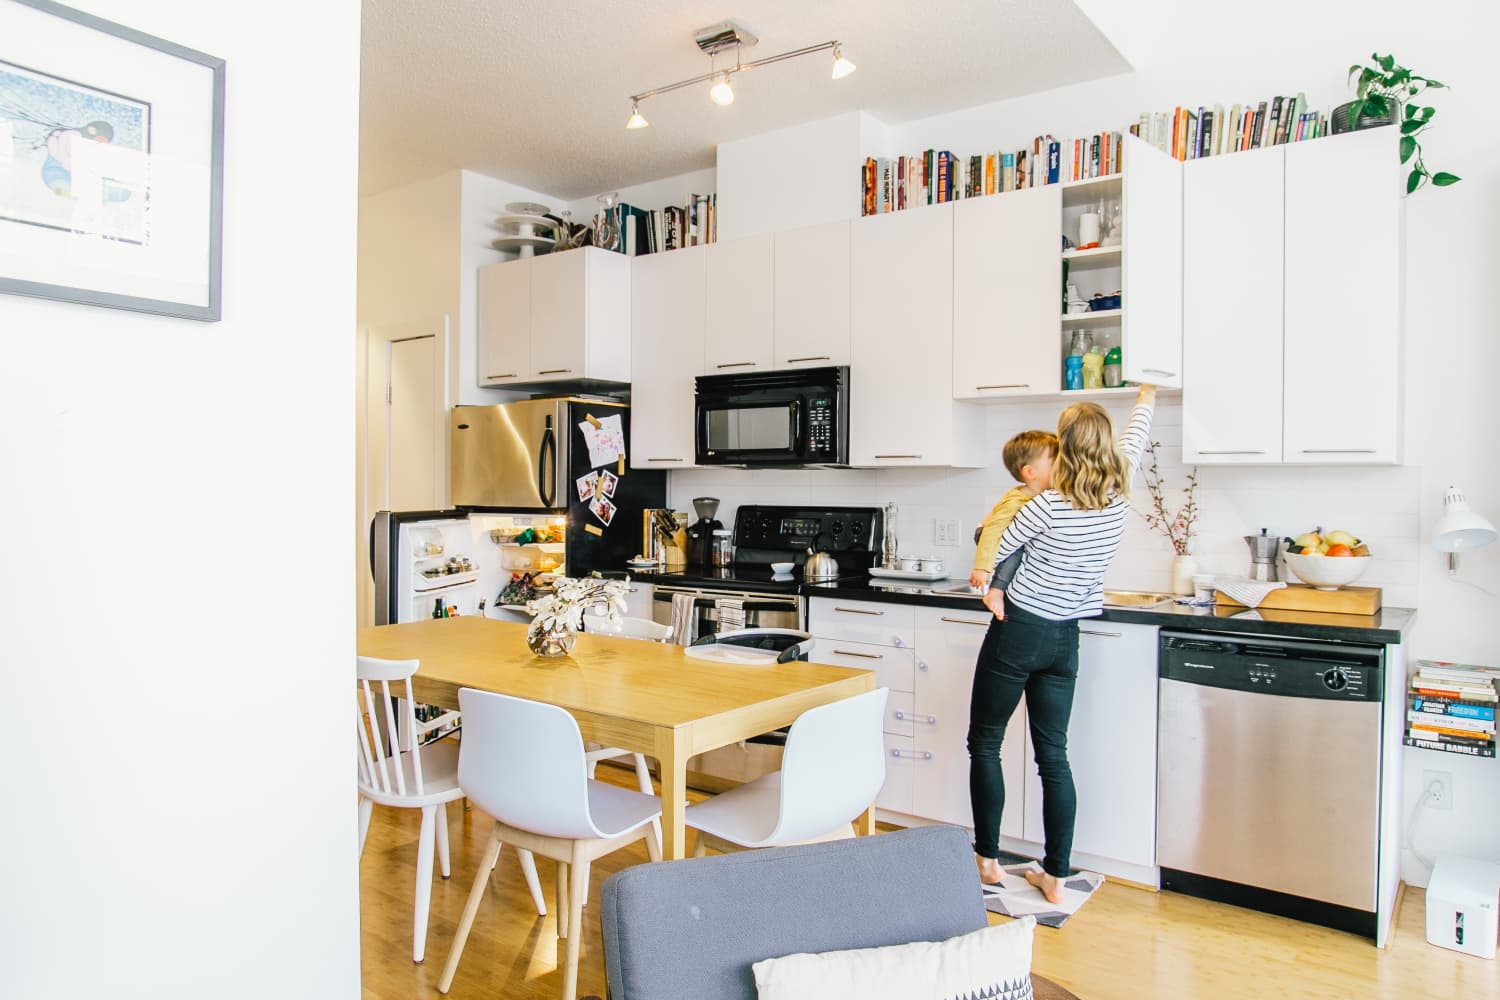 10 Creative Solutions to Maximize Your Kitchen Cabinet Space